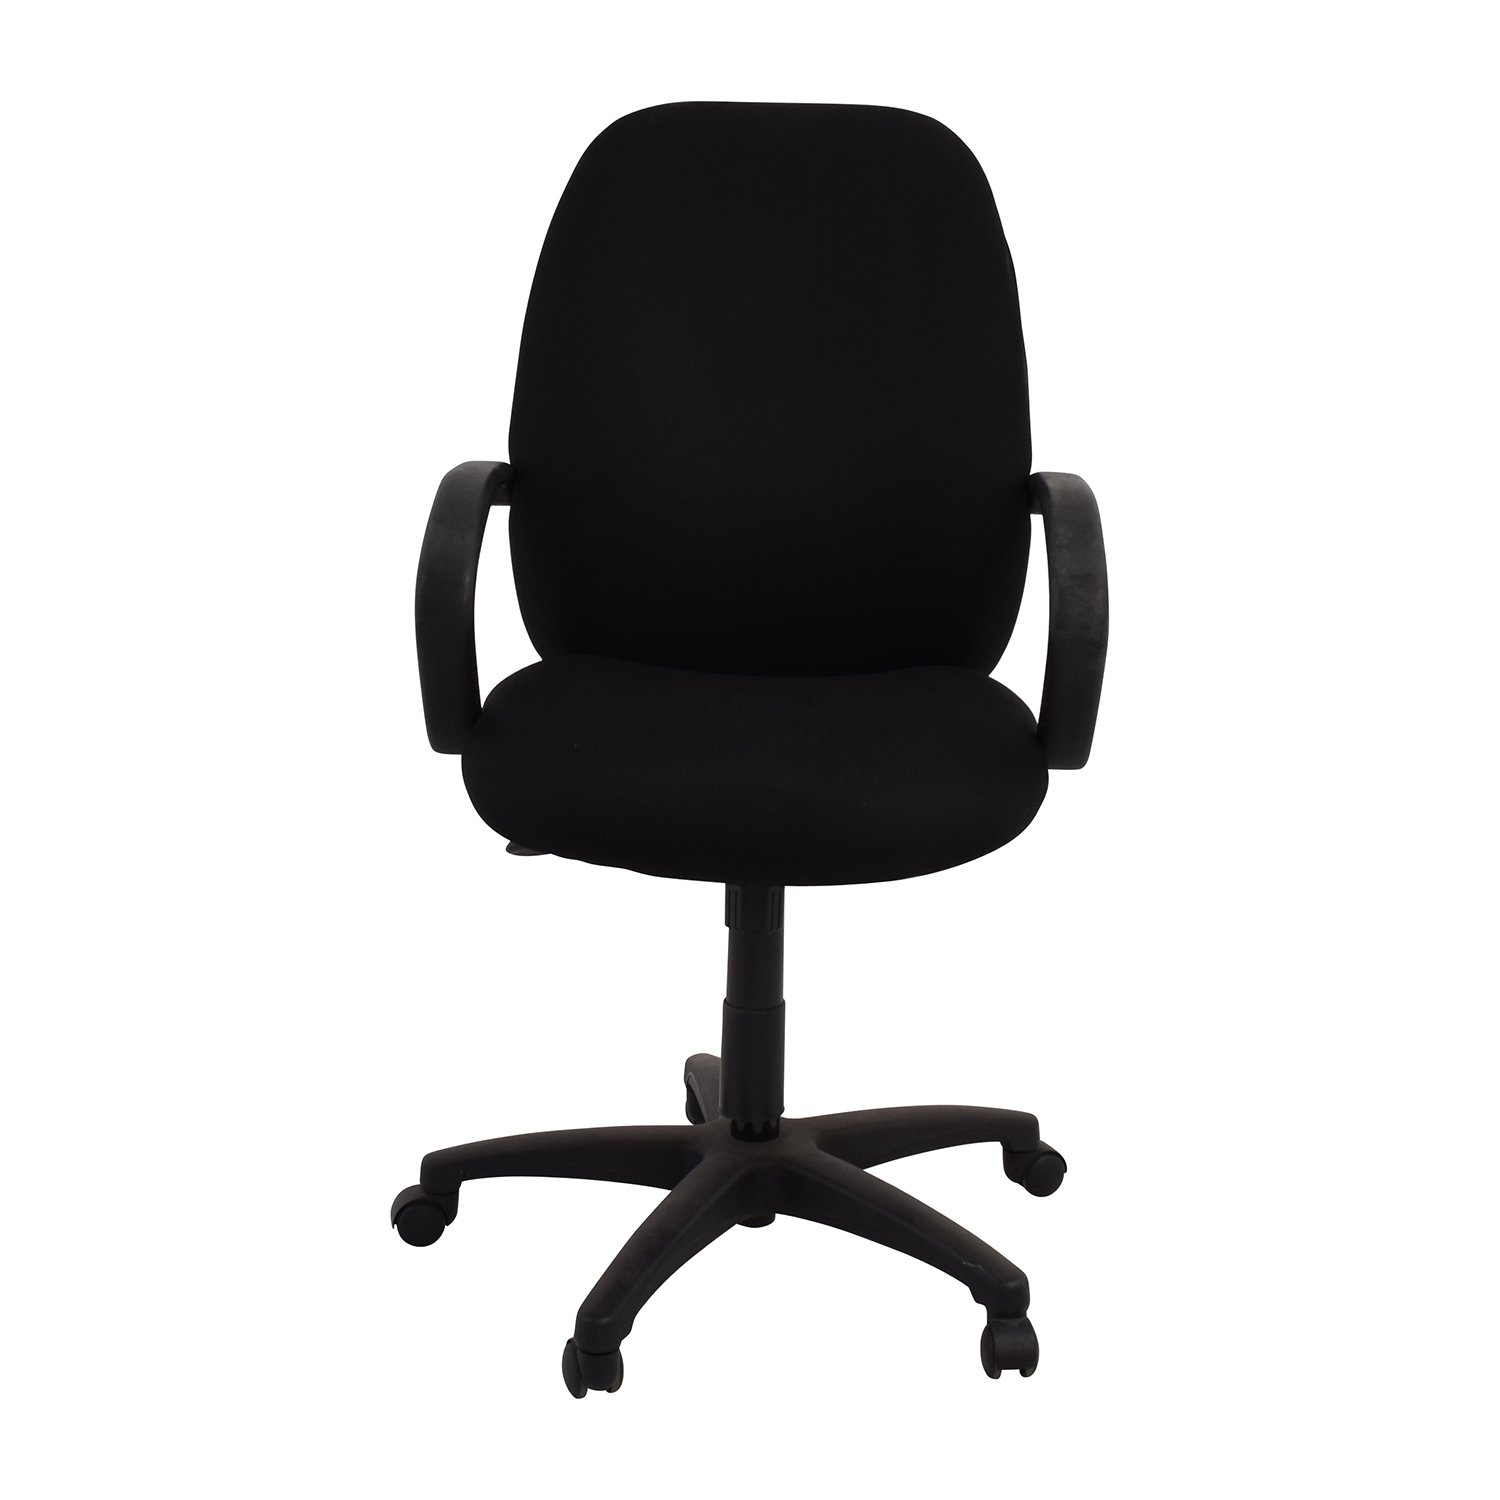 Black Swivel Office Chair second hand